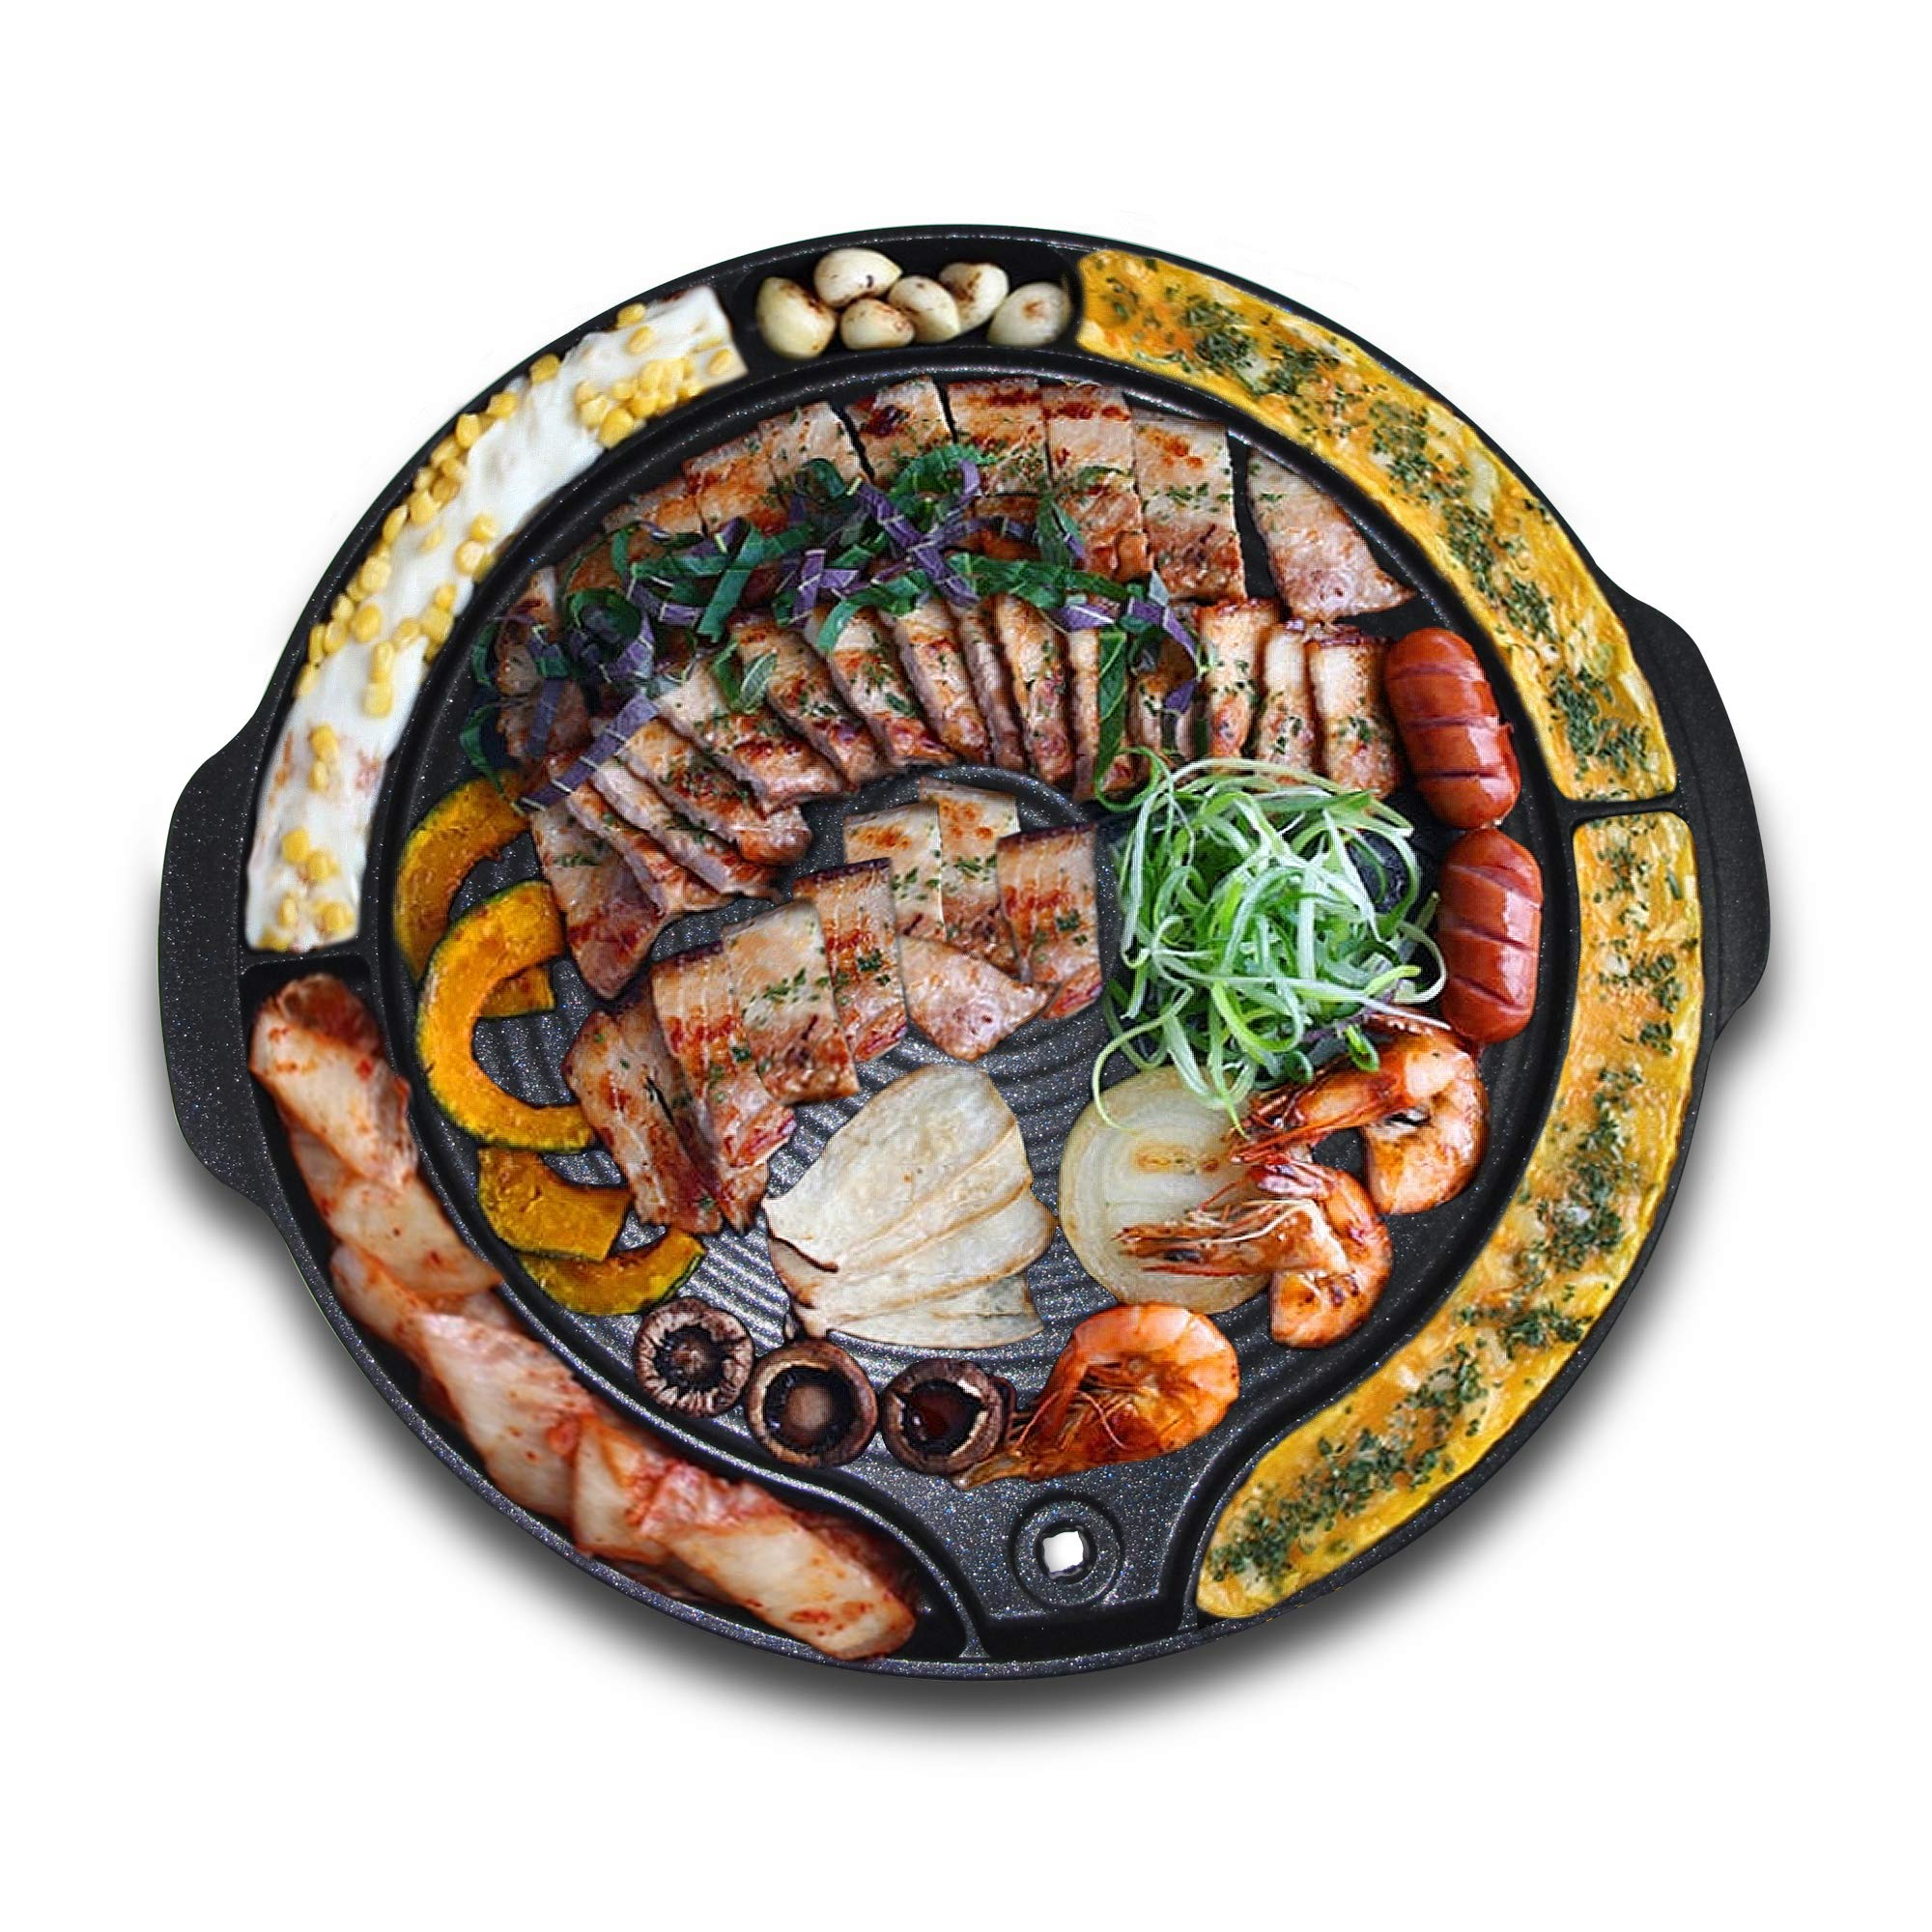 Tomoroo - Stove Top Korean BBQ Grill Pan - Non Stick Portable Barbeque Grilling Griddle Plate for Indoor and Outdoor by tomoroo